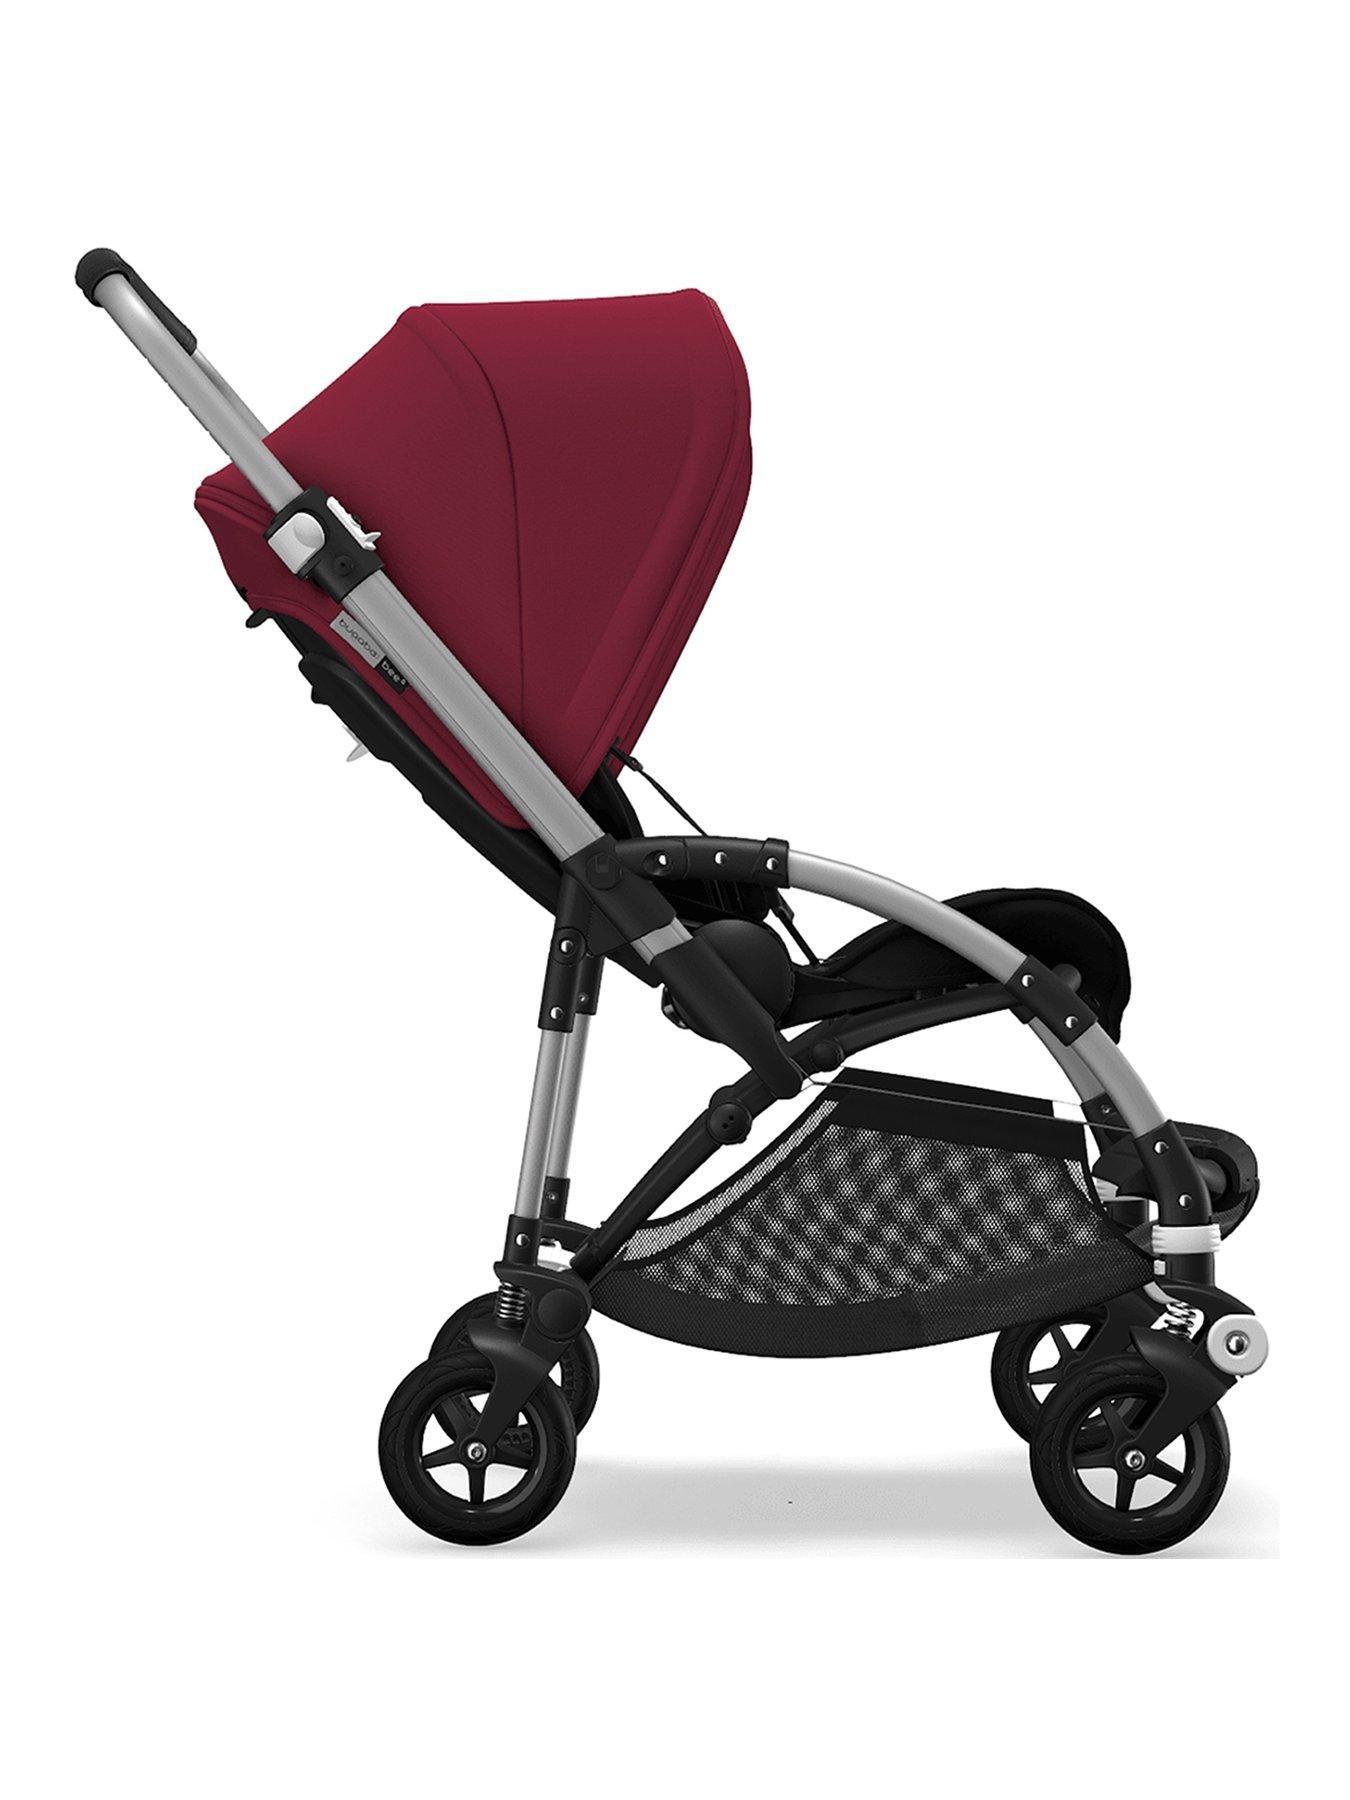 Bee5 Pushchair Ruby Red in 2020 Pushchair, Bugaboo cup